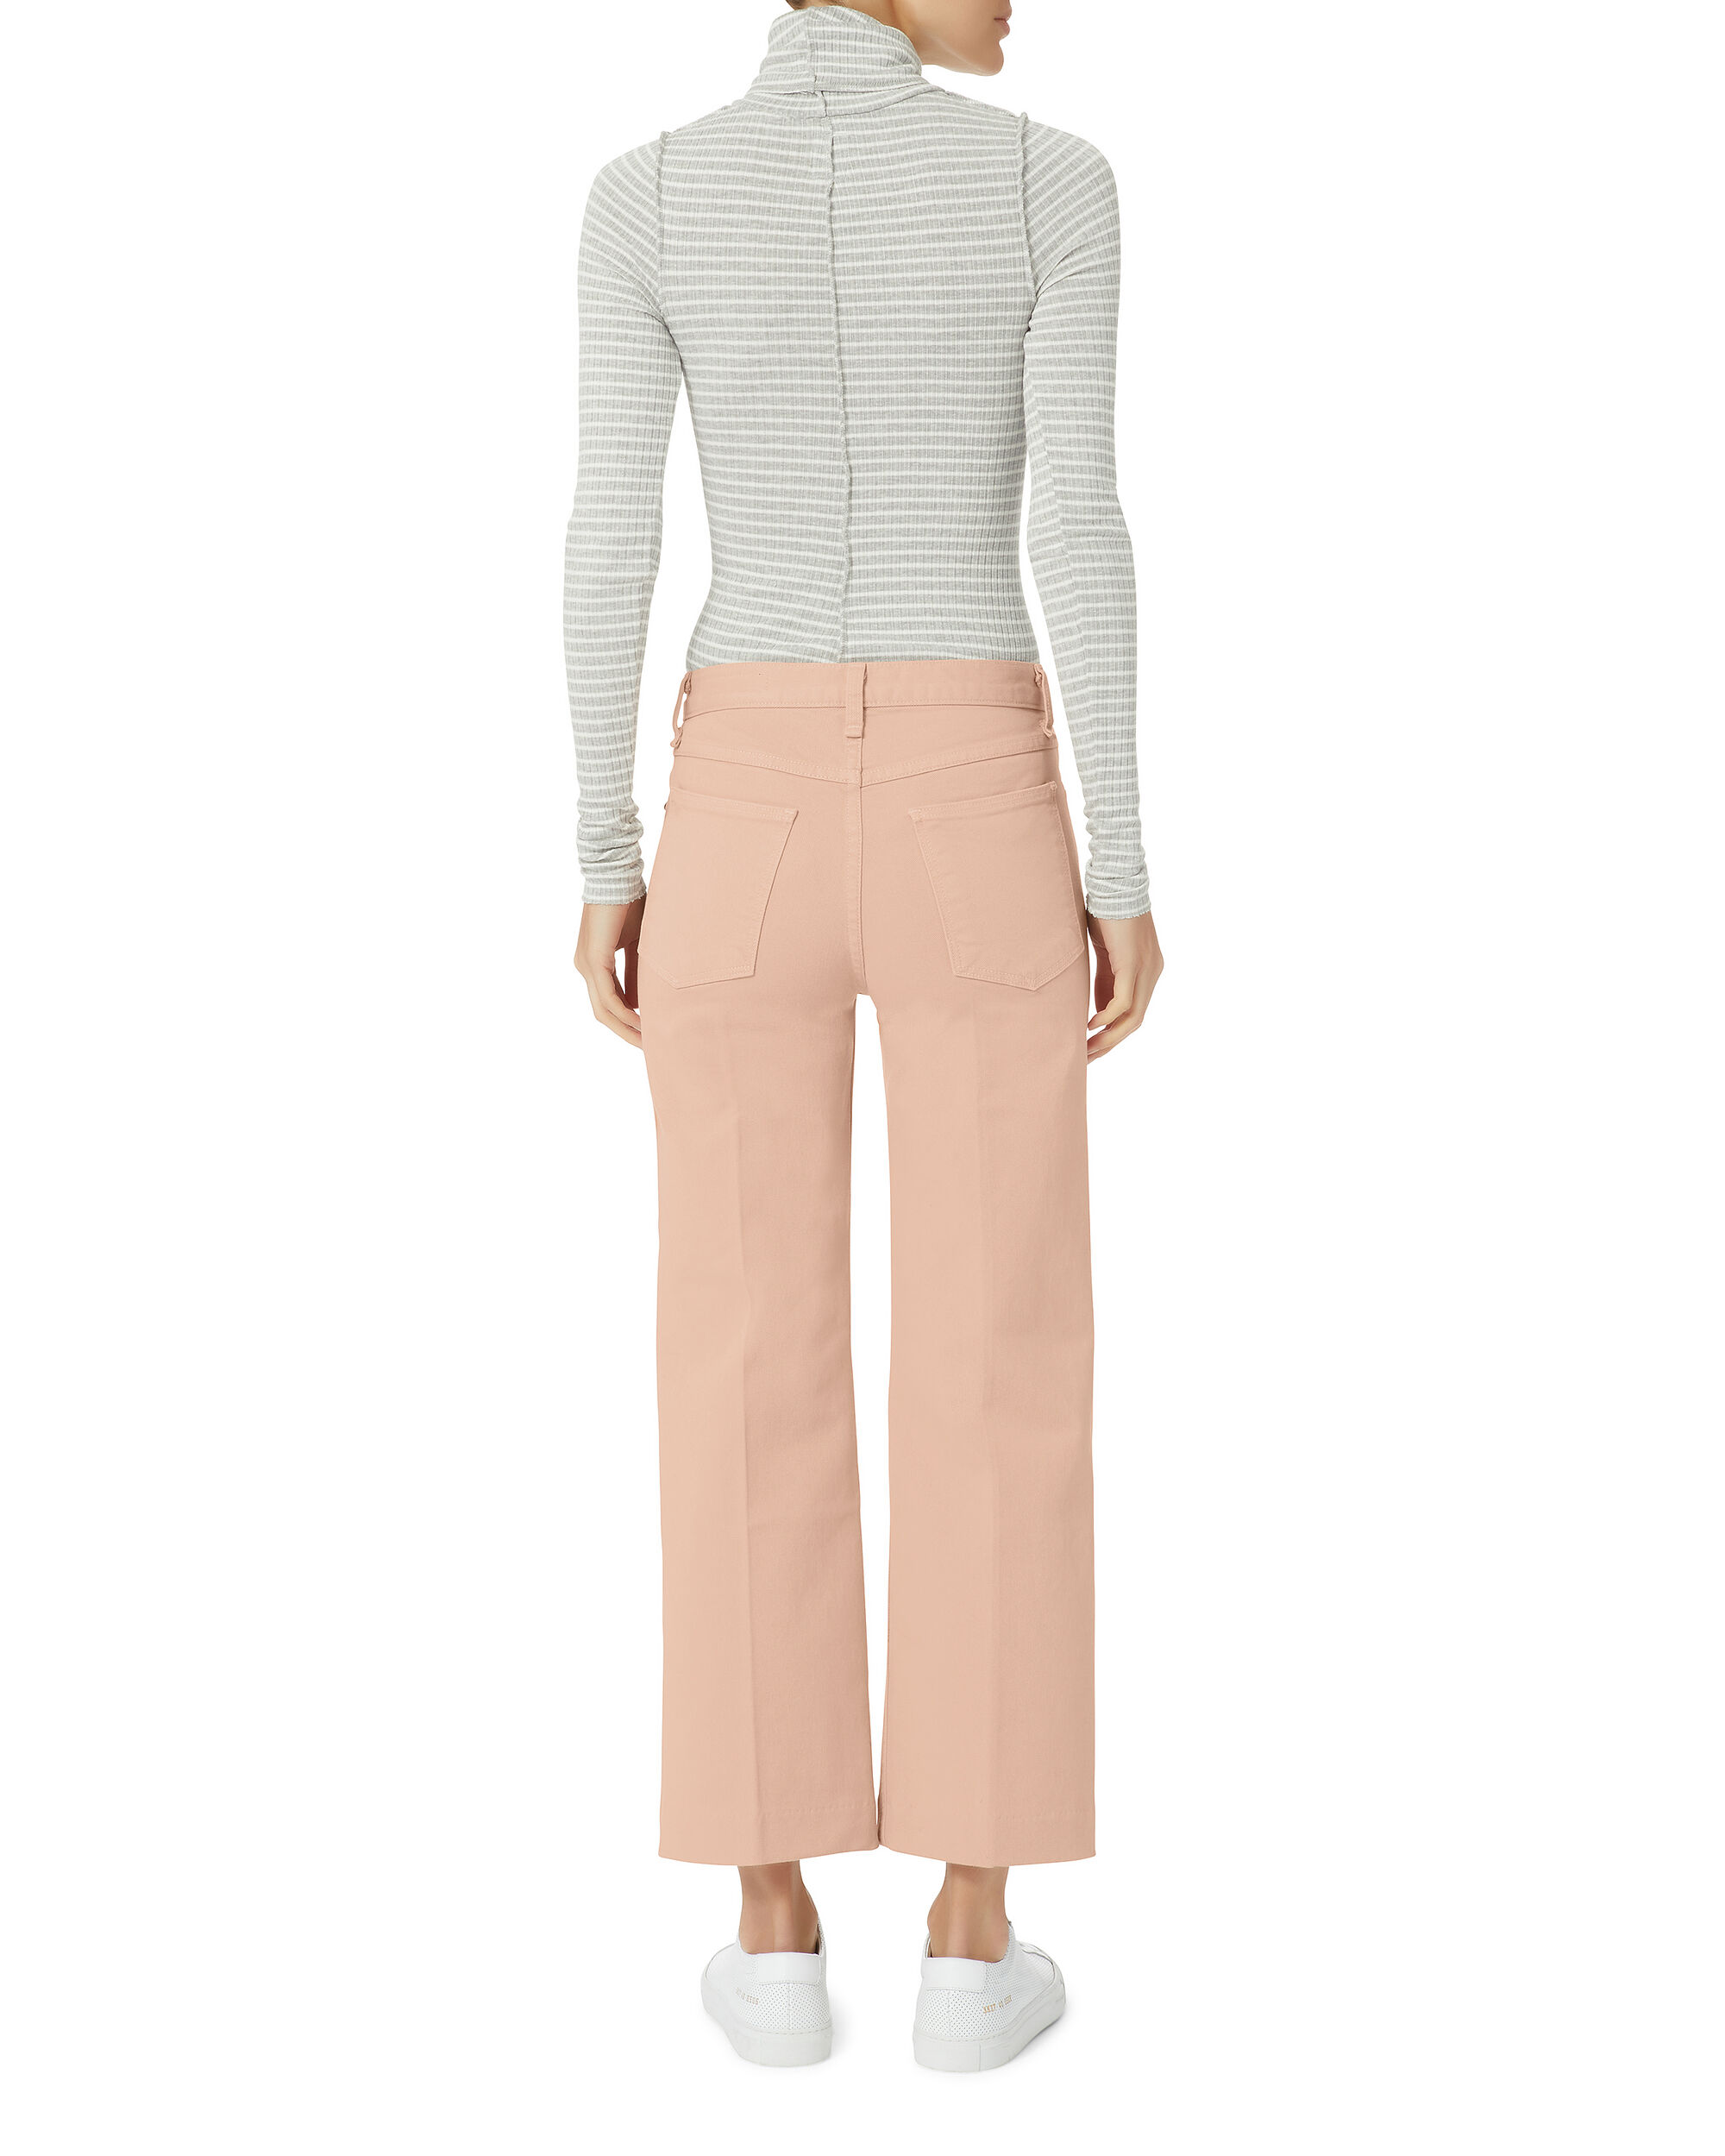 Justine Wide Leg Trousers, BLUSH, hi-res